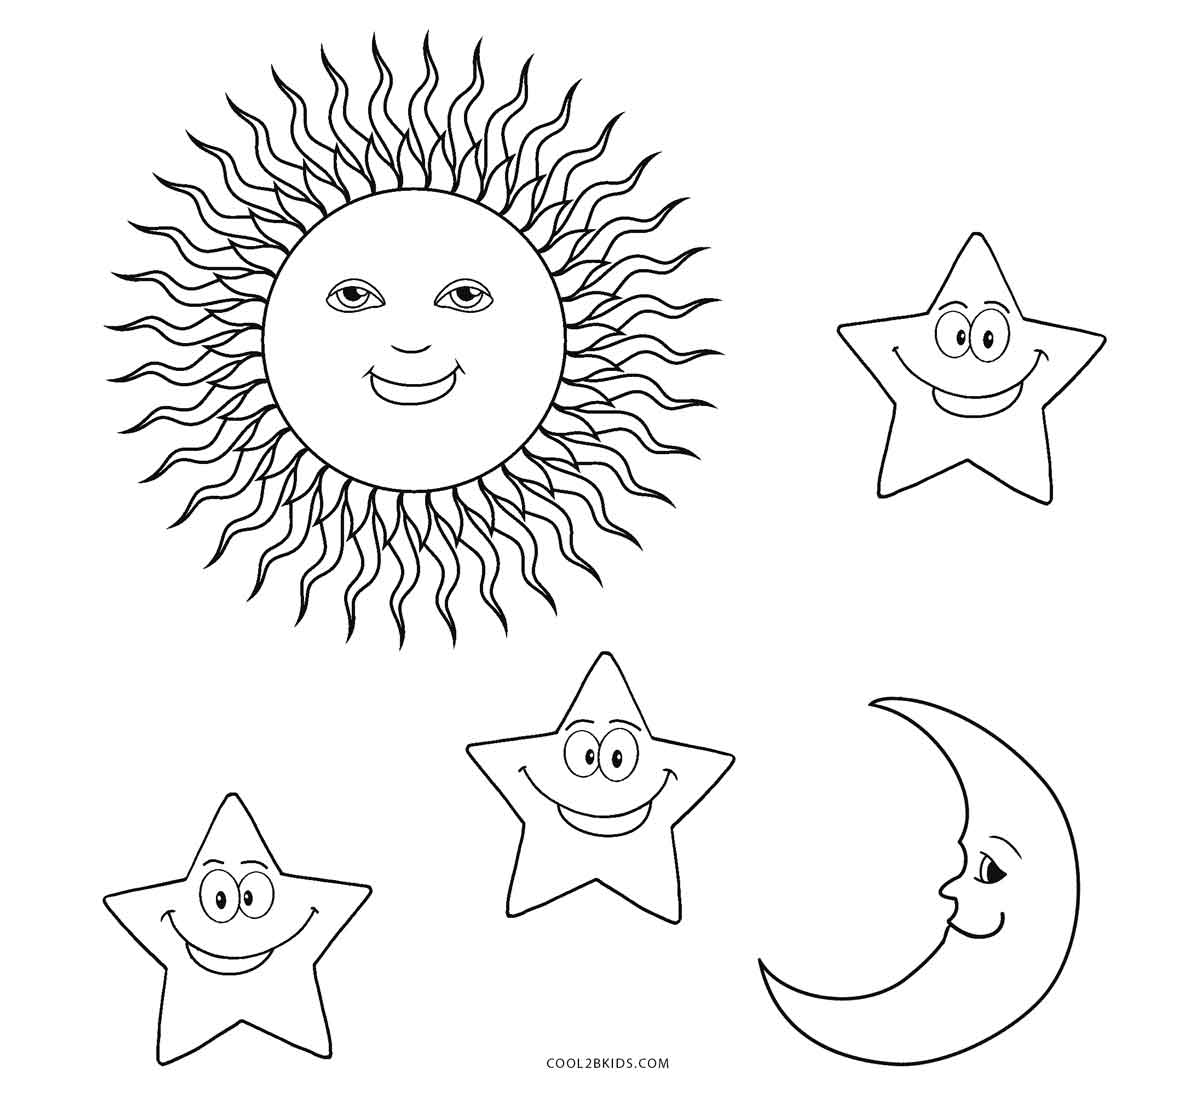 coloring sun free printable sun coloring pages for kids sun coloring 1 1